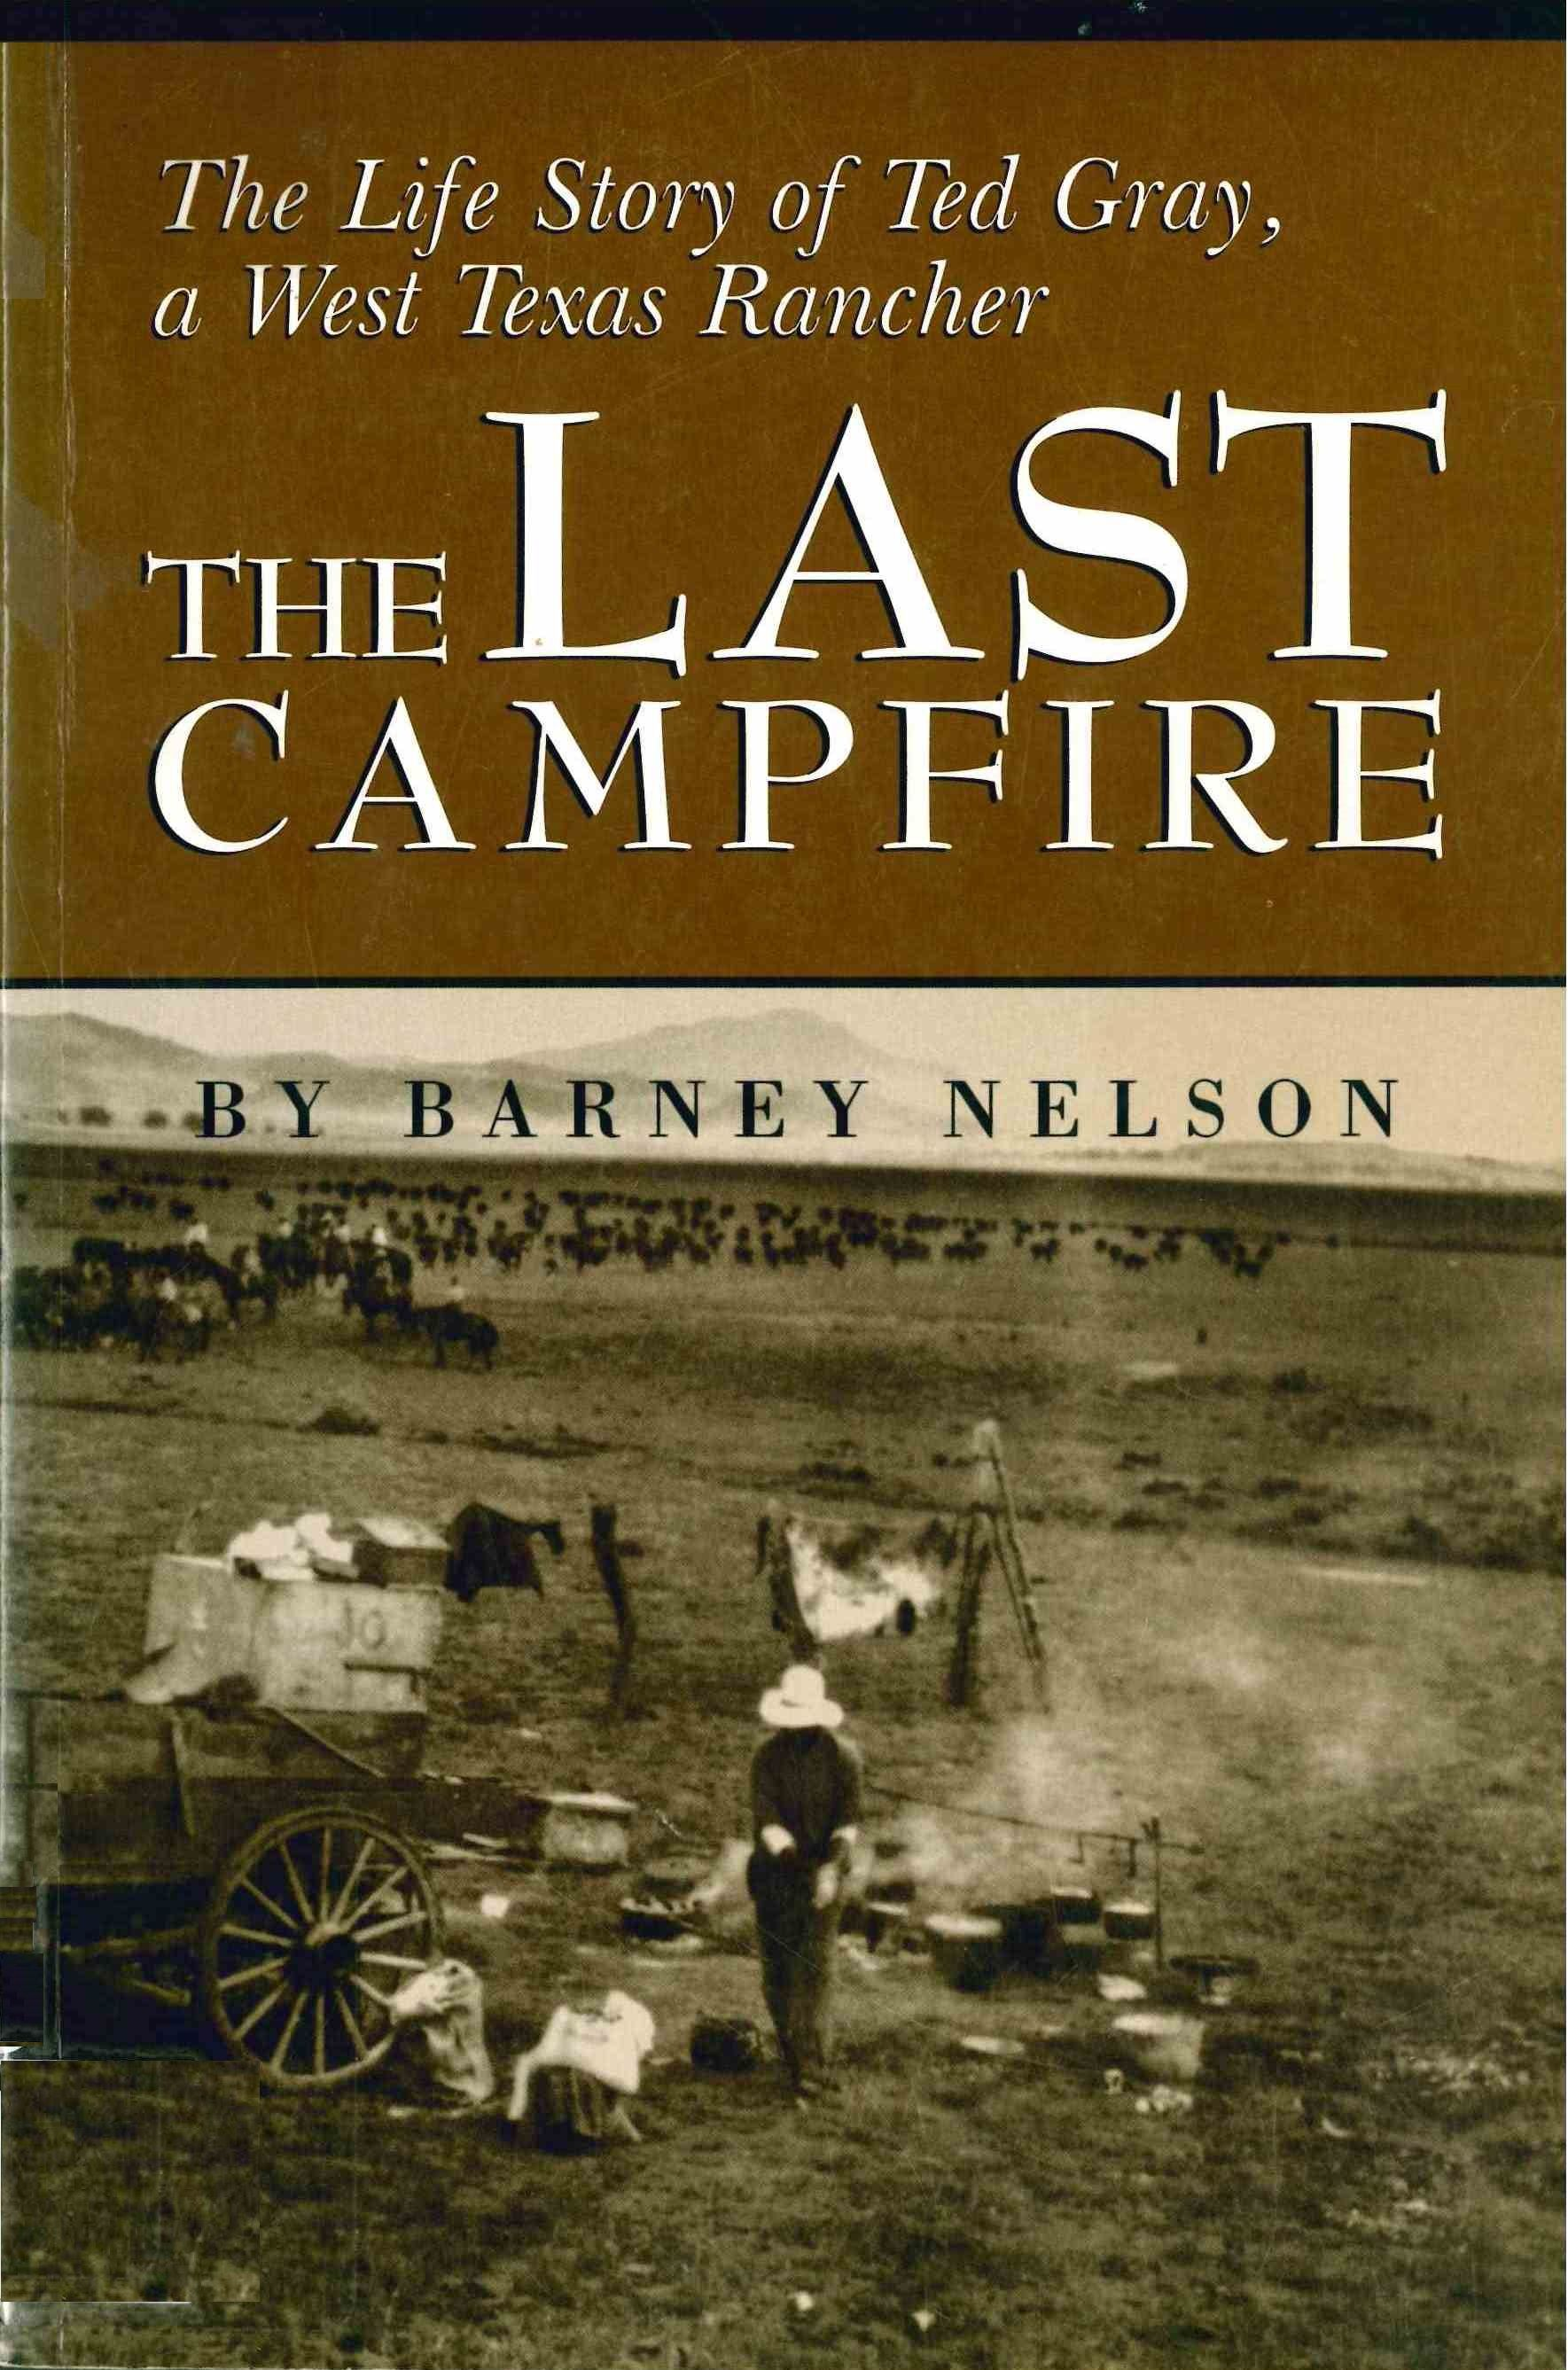 The Last Campfire: The Life Story of Ted Gray, a West Texas